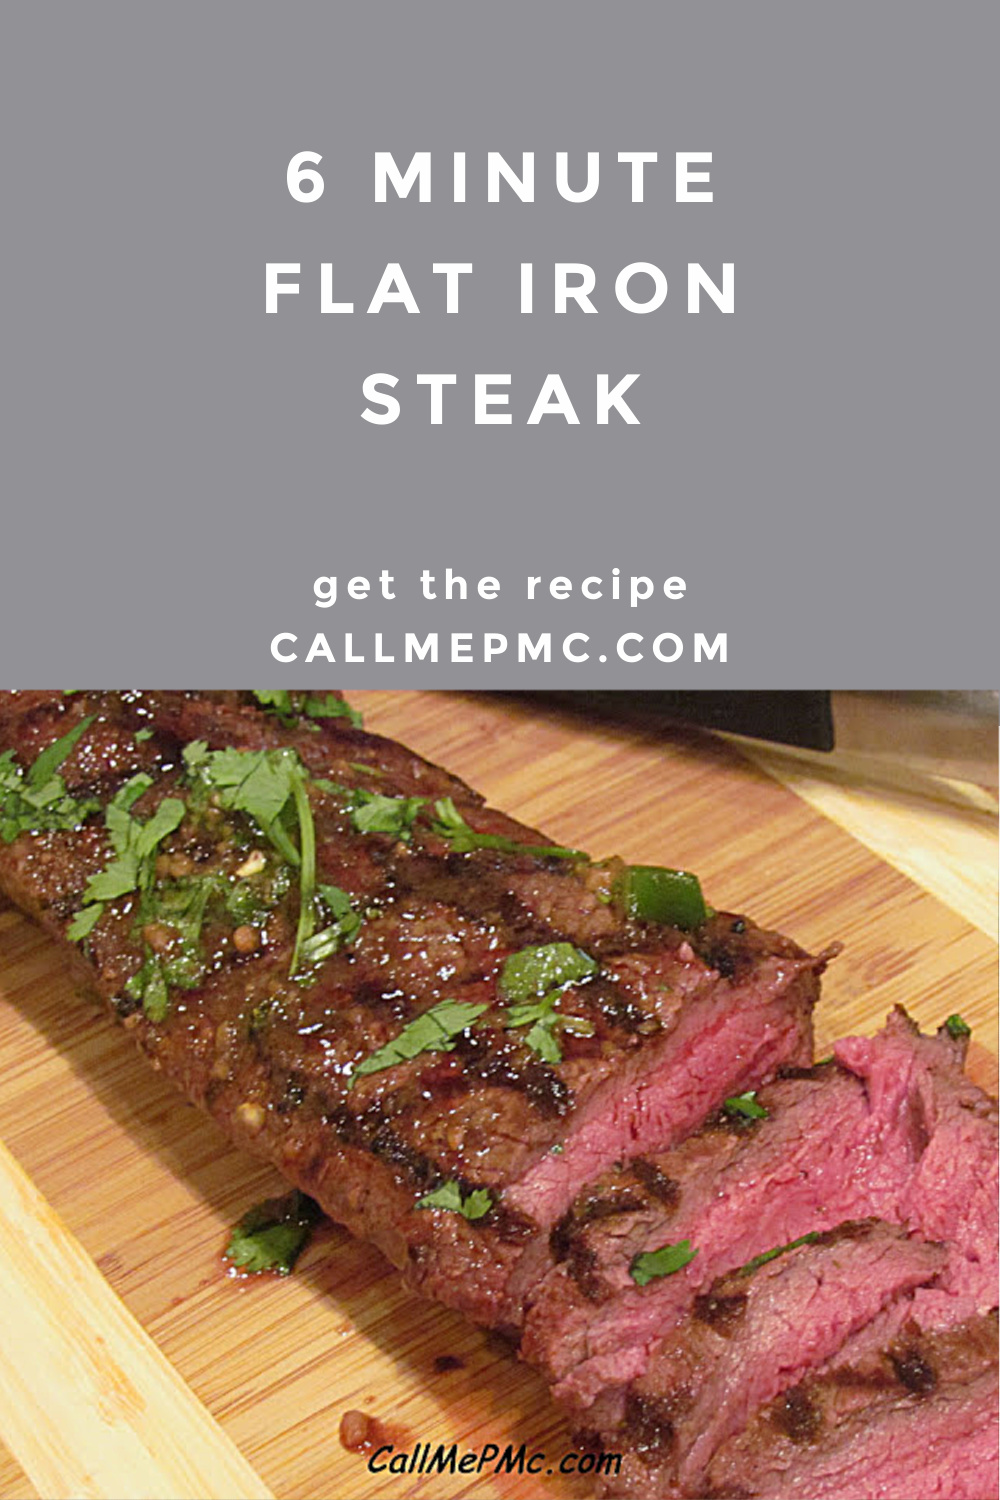 Six Minute Flat Iron Steak is marinated in a mix of kitchen staples like garlic, soy, and ginger that results in a flavorful marinade. #steak #grilling #flatiron #marinated #recipe #callmepmc via @pmctunejones